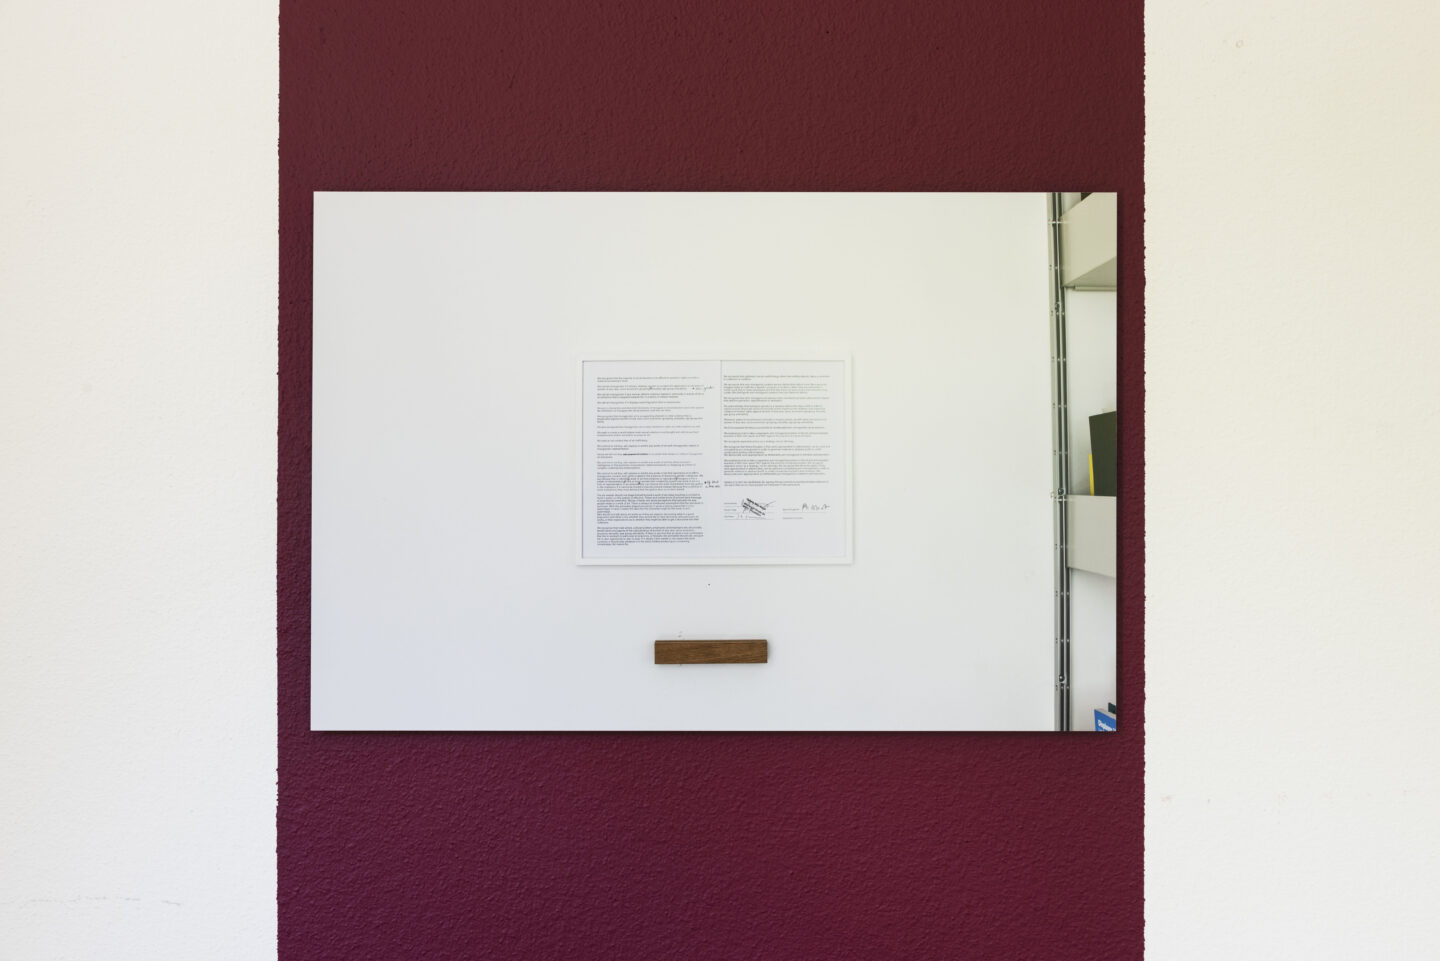 Exhibition View Bea Schlingelhoff Soloshow «soft mime win; view on softmimewin I (Düsseldorf, Galerie Max Mayer), 2020, documentation provided by Galerie Max Mayer, print on aluminum, 75x50 cm, cardinal wall paint, variable dimensions» at Cherish, Geneva, 2020 / Photo: James Bantone / Courtesy: the artist and Cherish